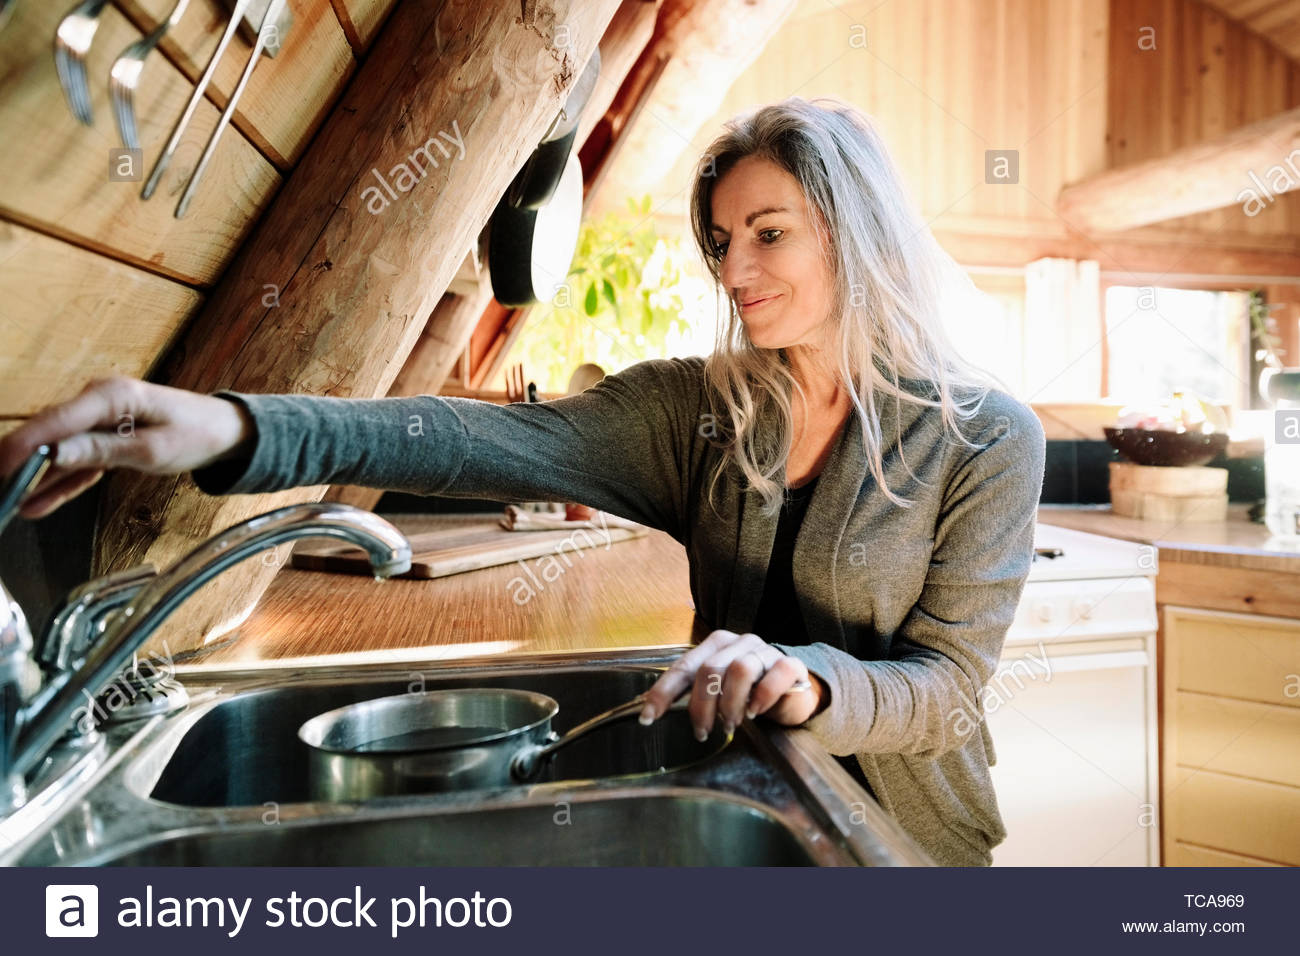 Woman filling pot with water, cooking in cabin kitchen - Stock Image